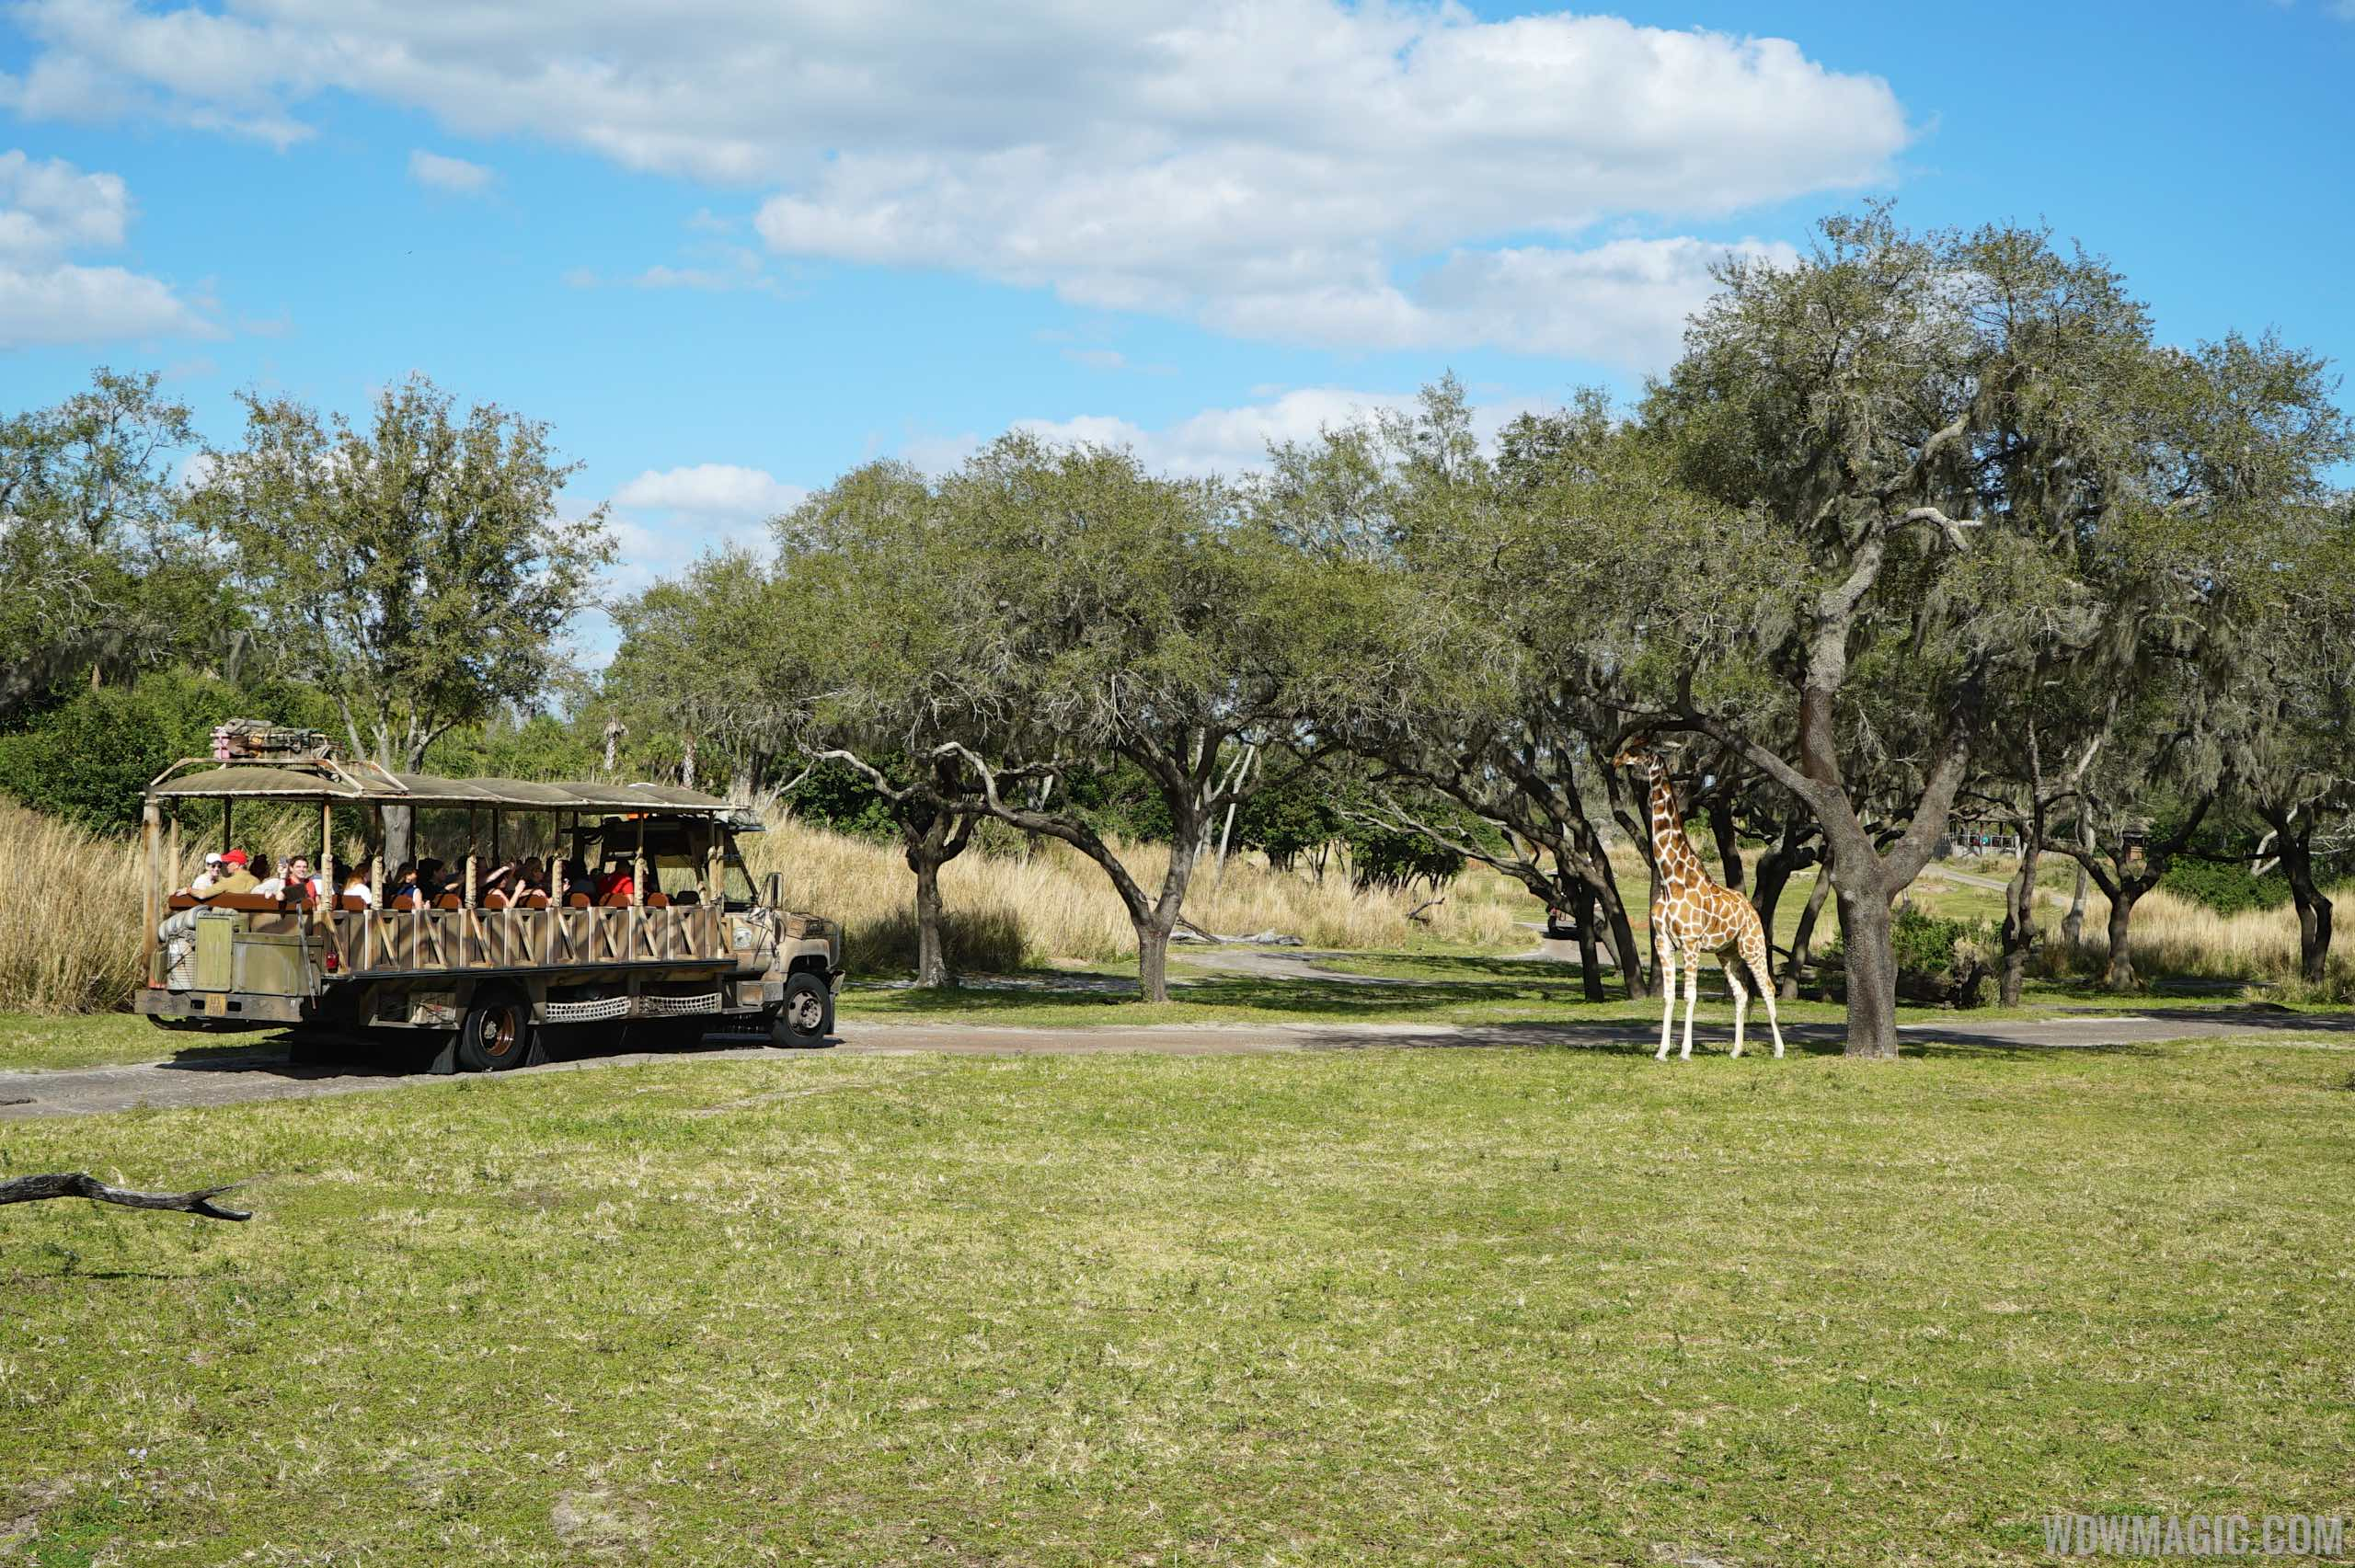 Travel through an African Savannah at Disney's Animal Kingdom